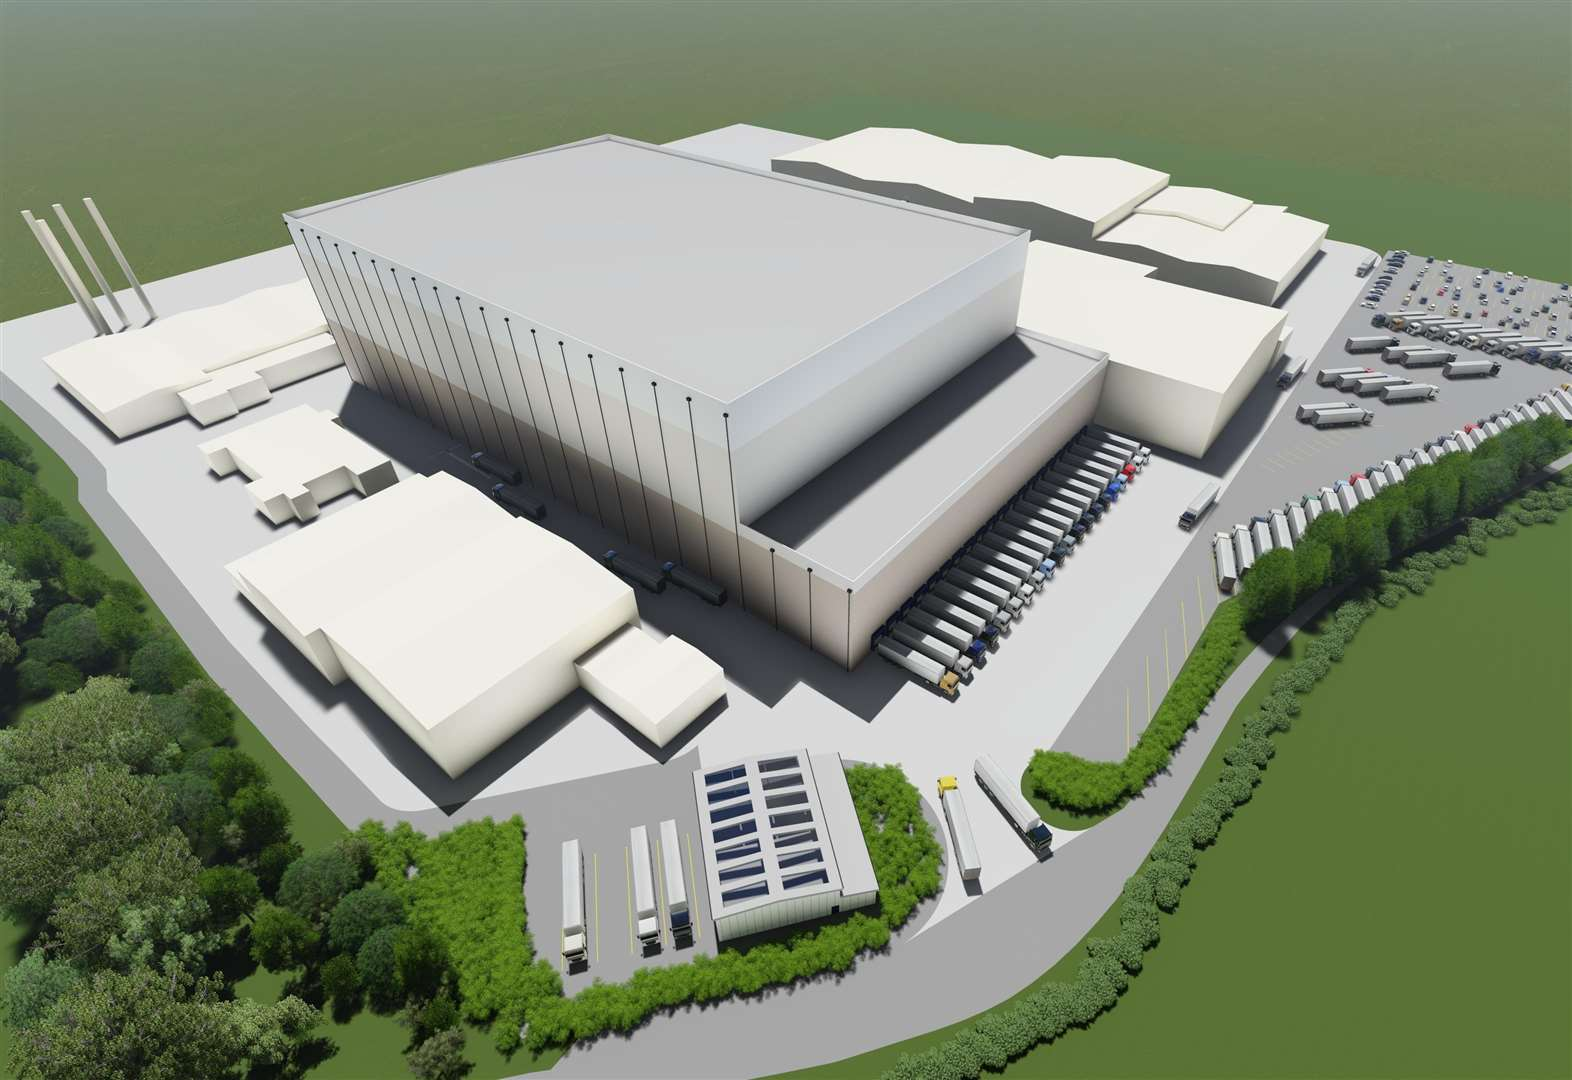 300 jobs promised and 550 safeguarded in Easton plan